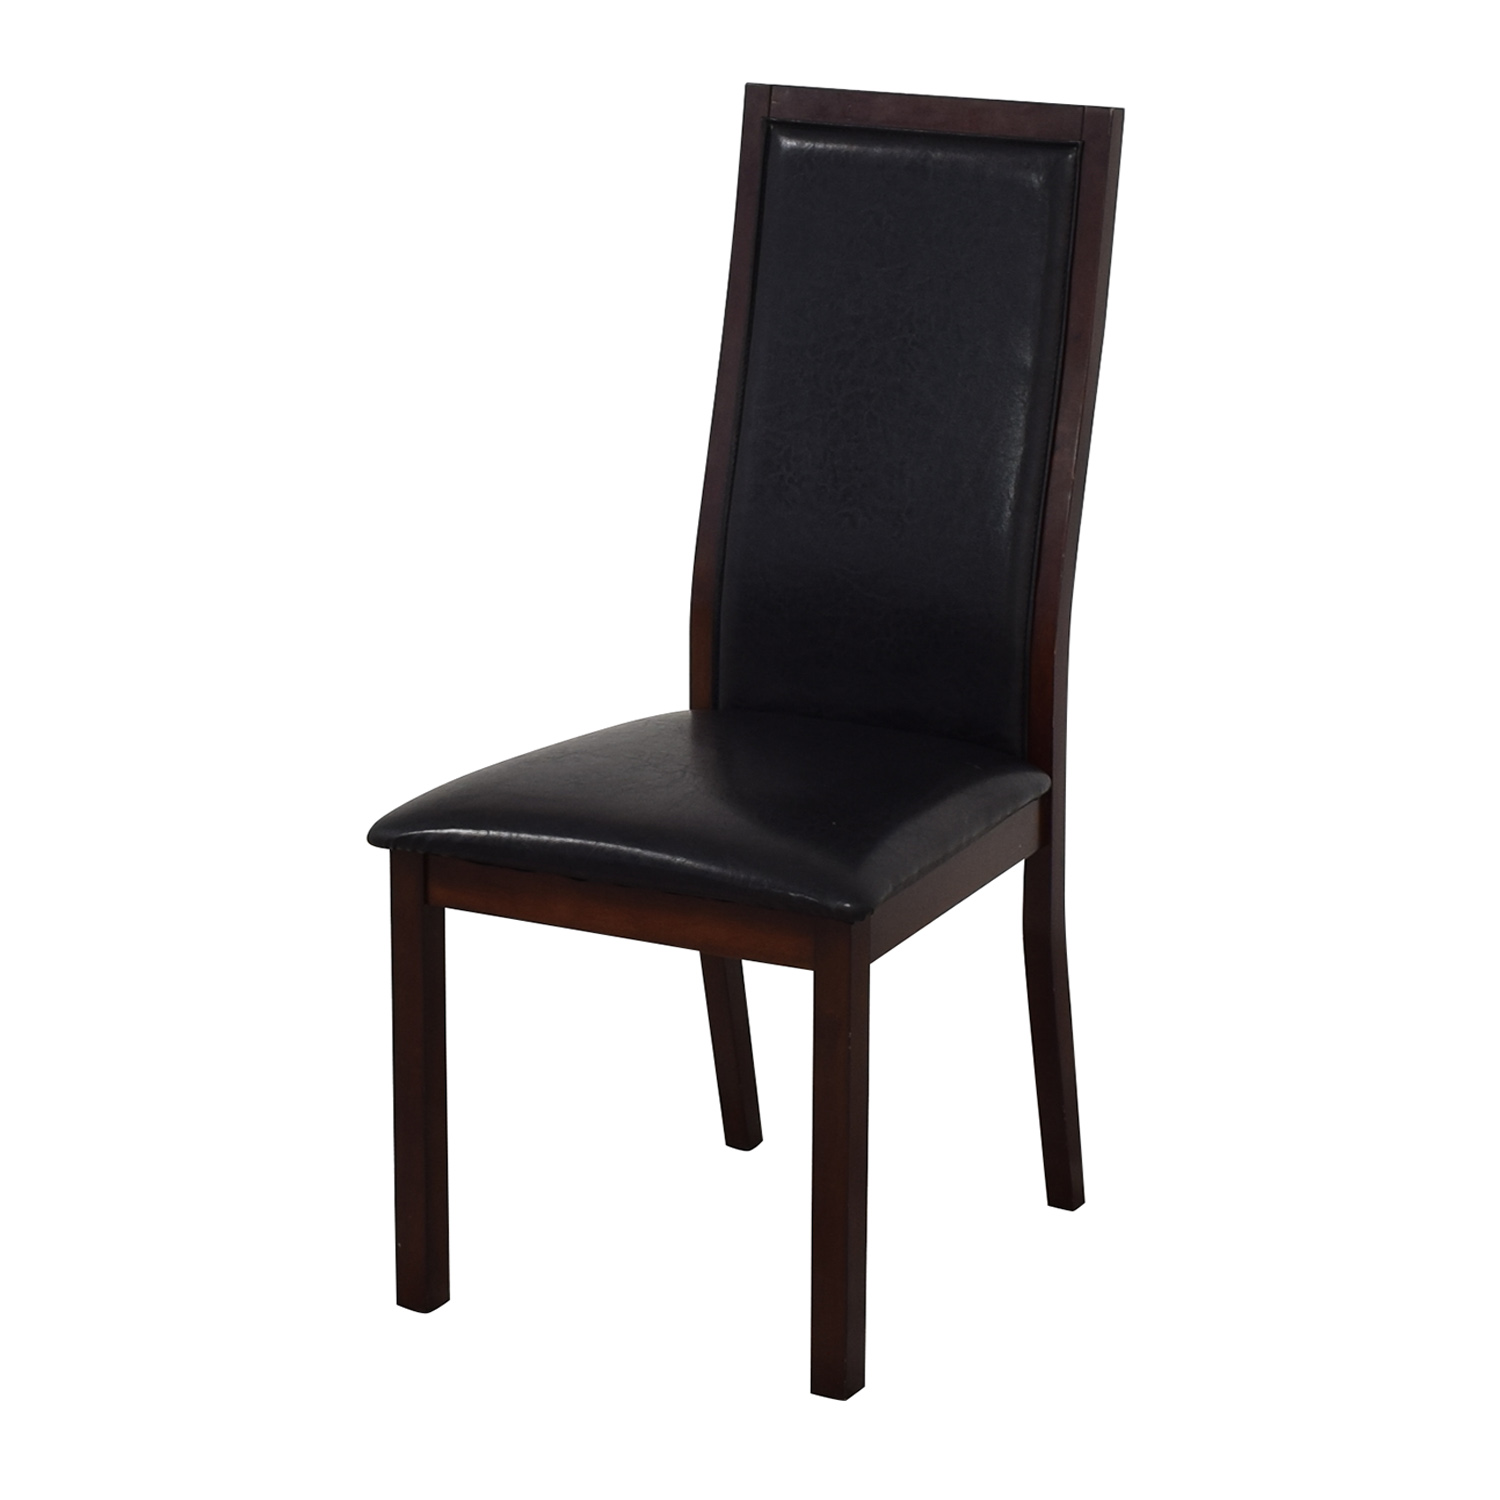 Coaster Fine Furniture Coaster Dining Chairs black and brown